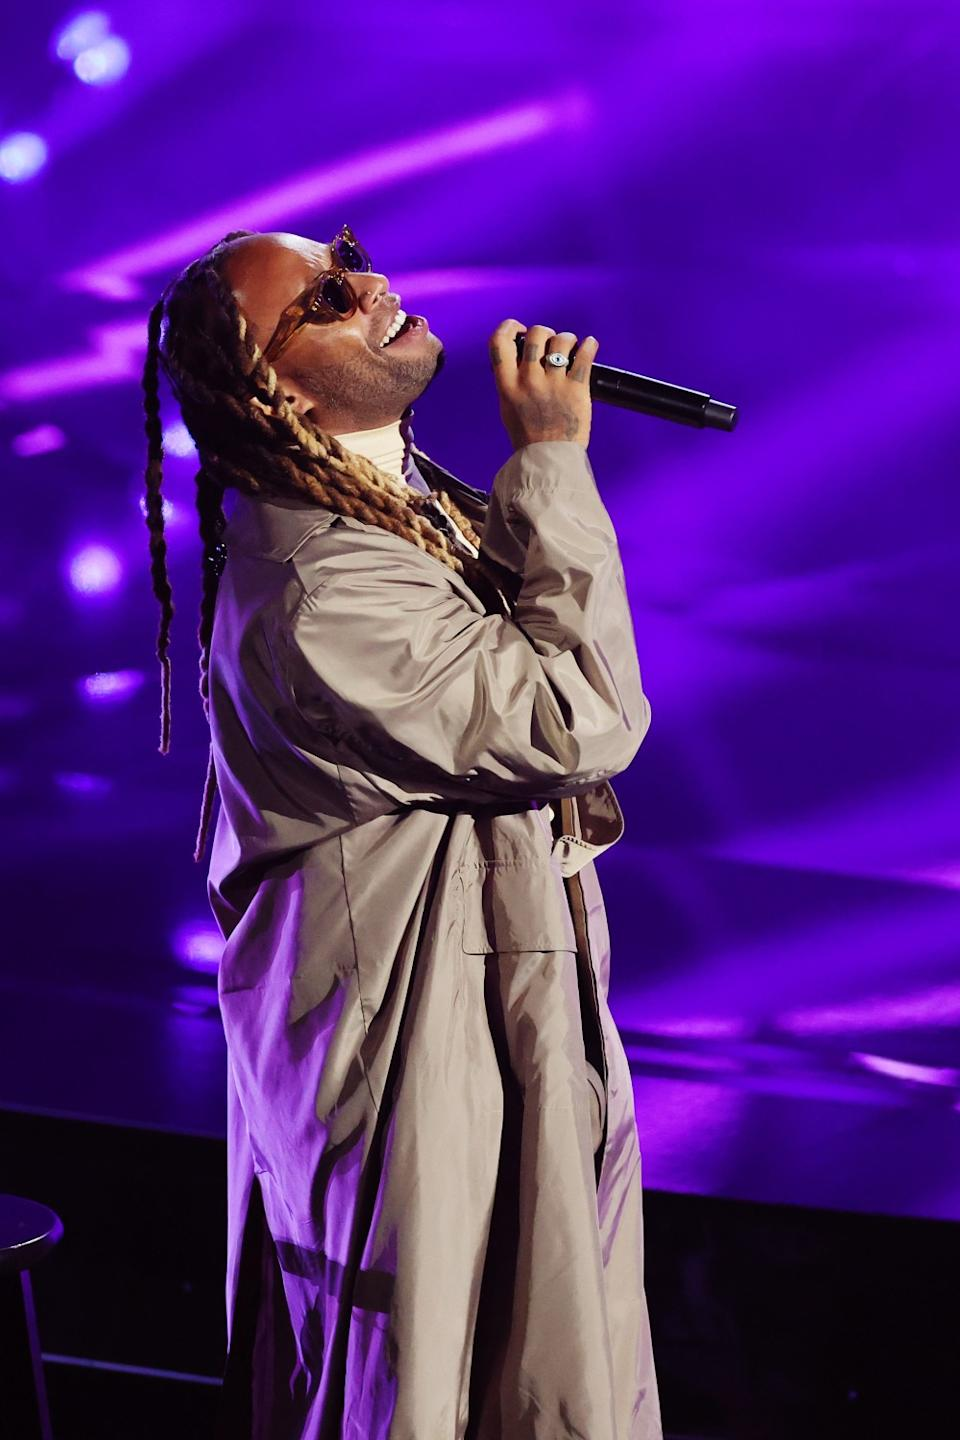 Ty Dolla Sign, in sunglasses and a long tan duster, sings into the microphone.